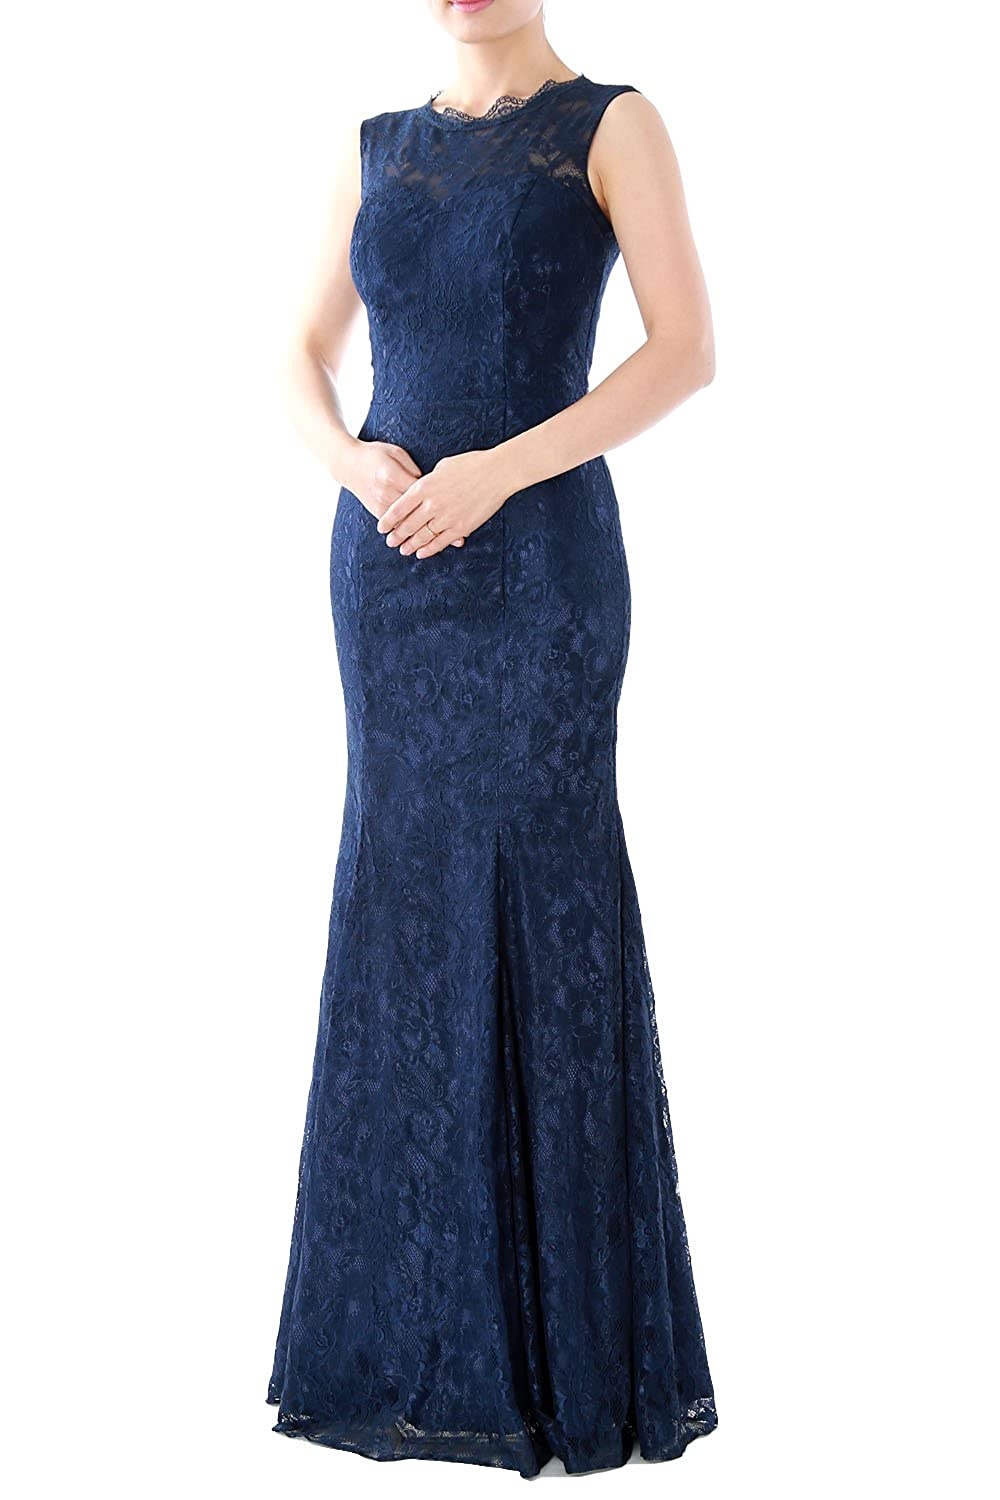 MACloth Women Mermaid Lace Long Bridesmaid Dress Wedding Formal Evening Gown